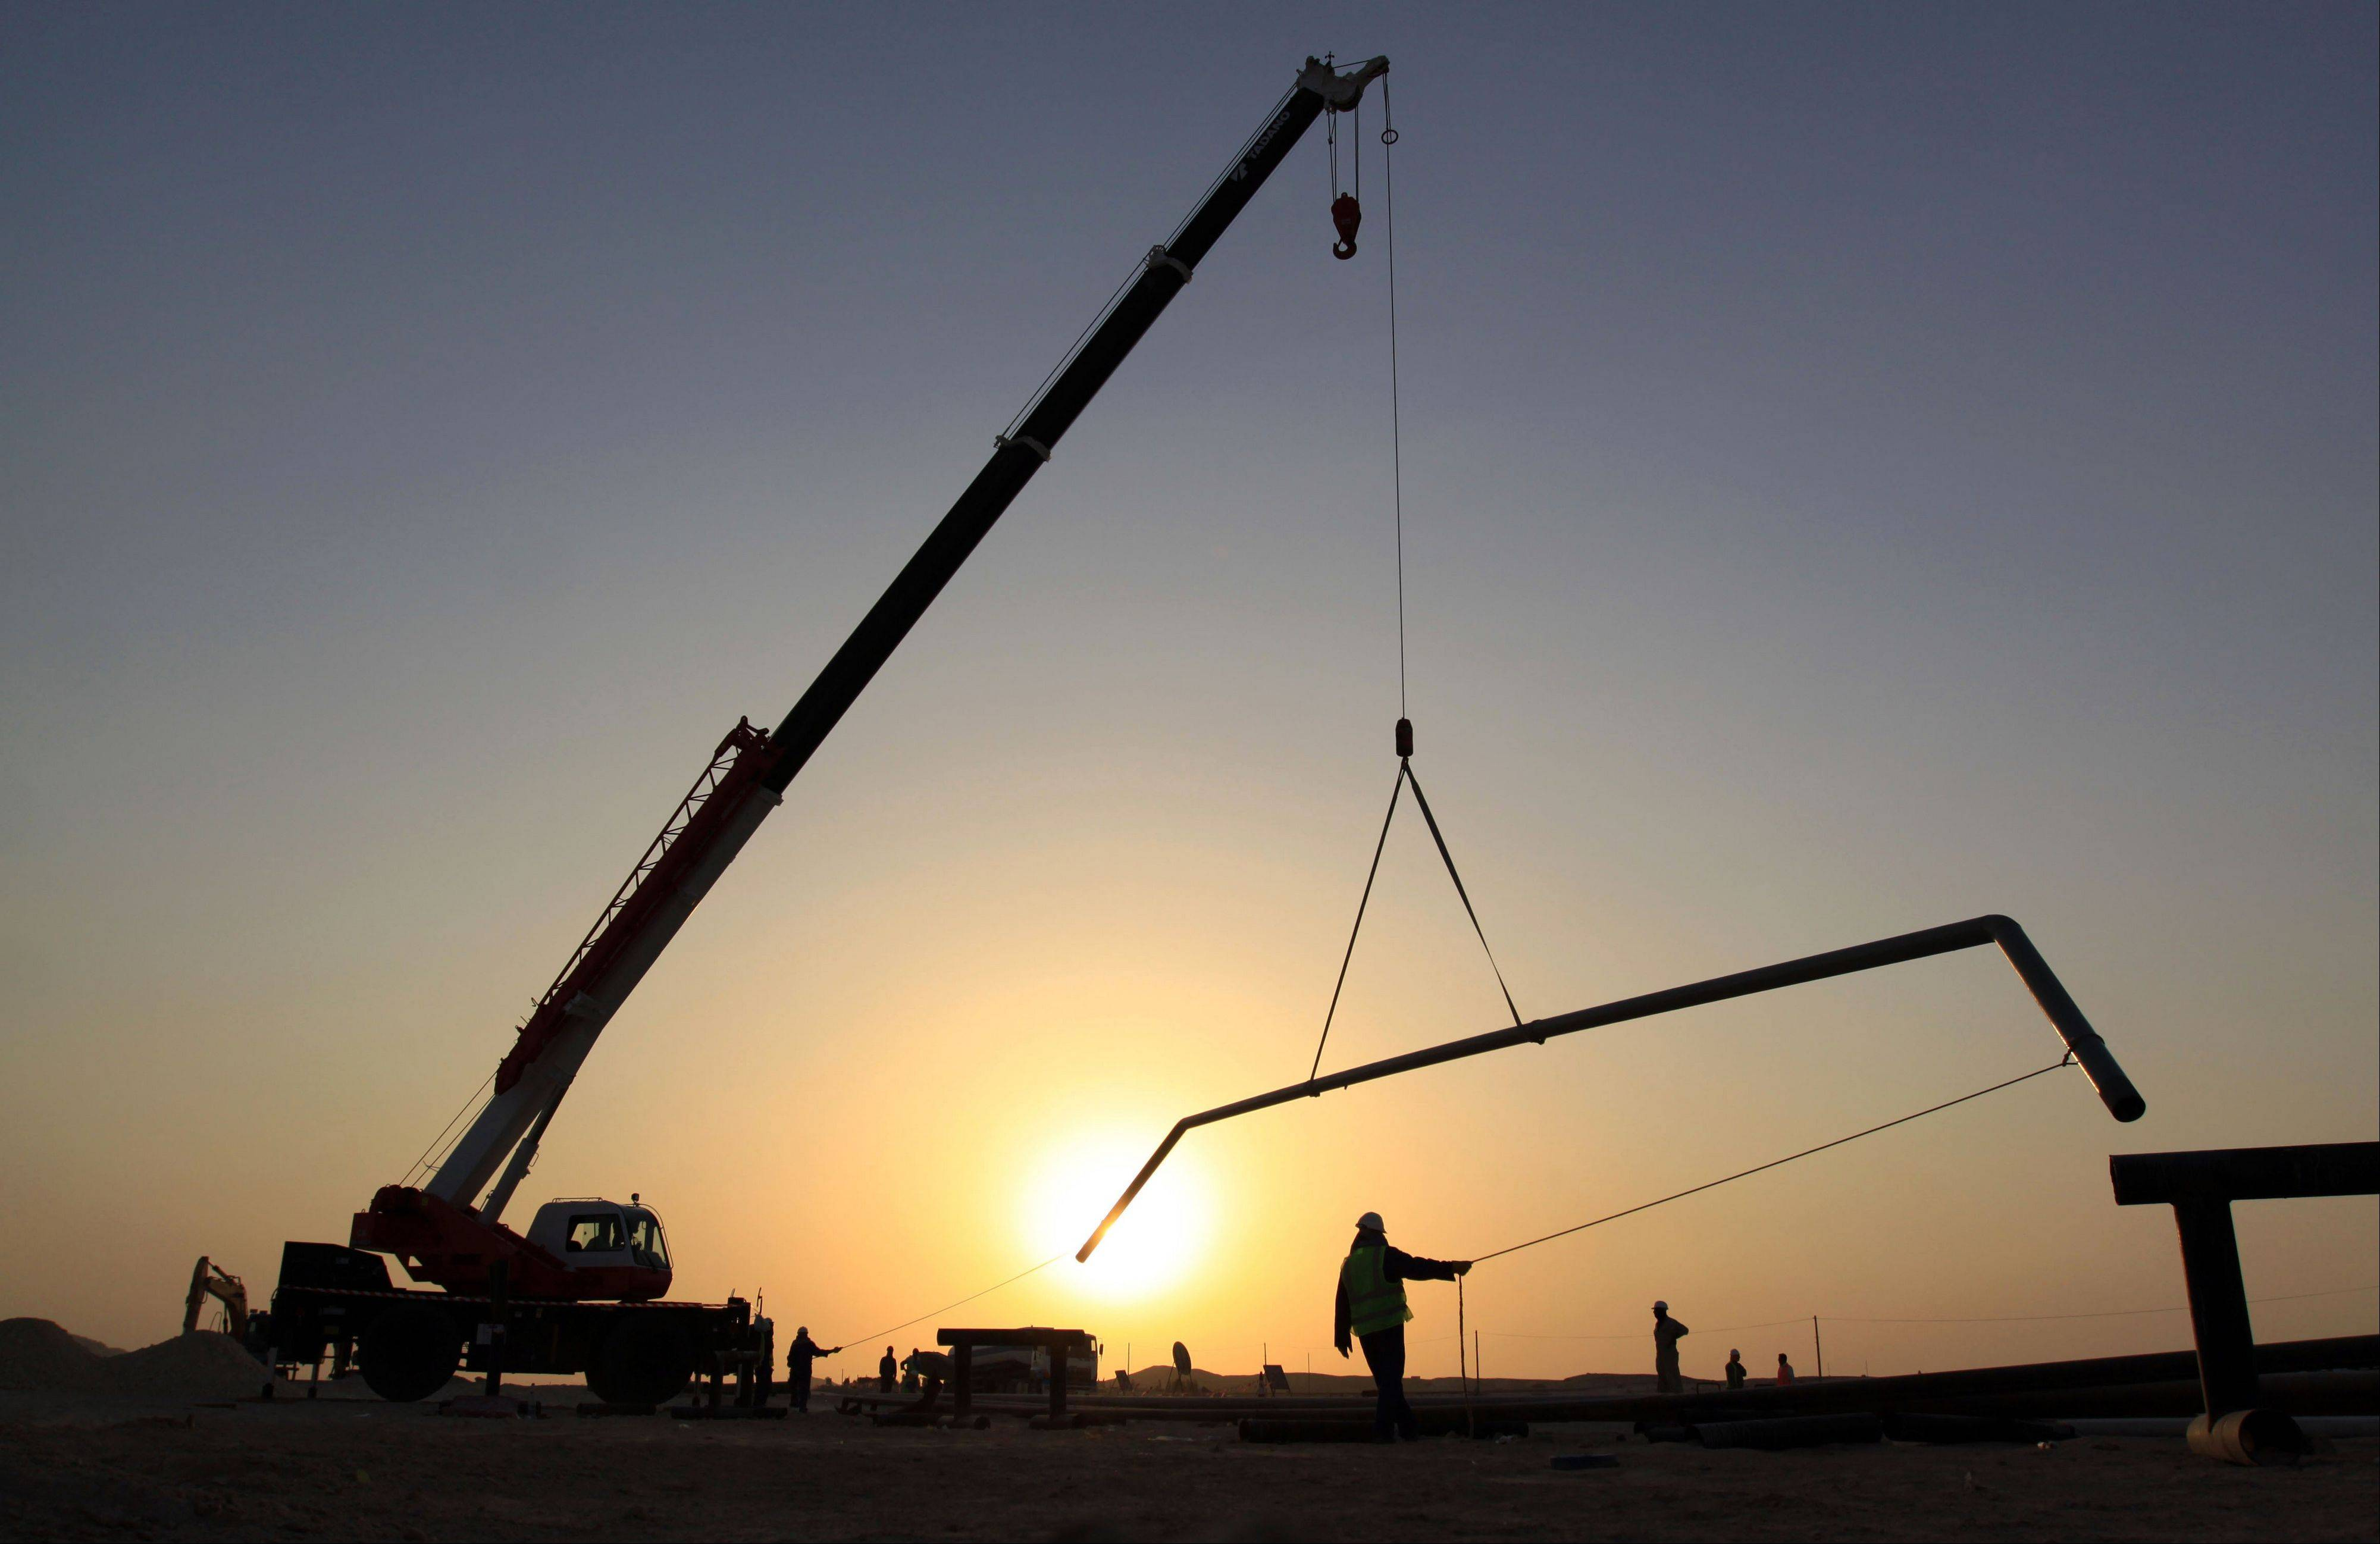 Oil workers are seen fixing pipes at sunset in the desert oil fields of Sakhir, Bahrain.